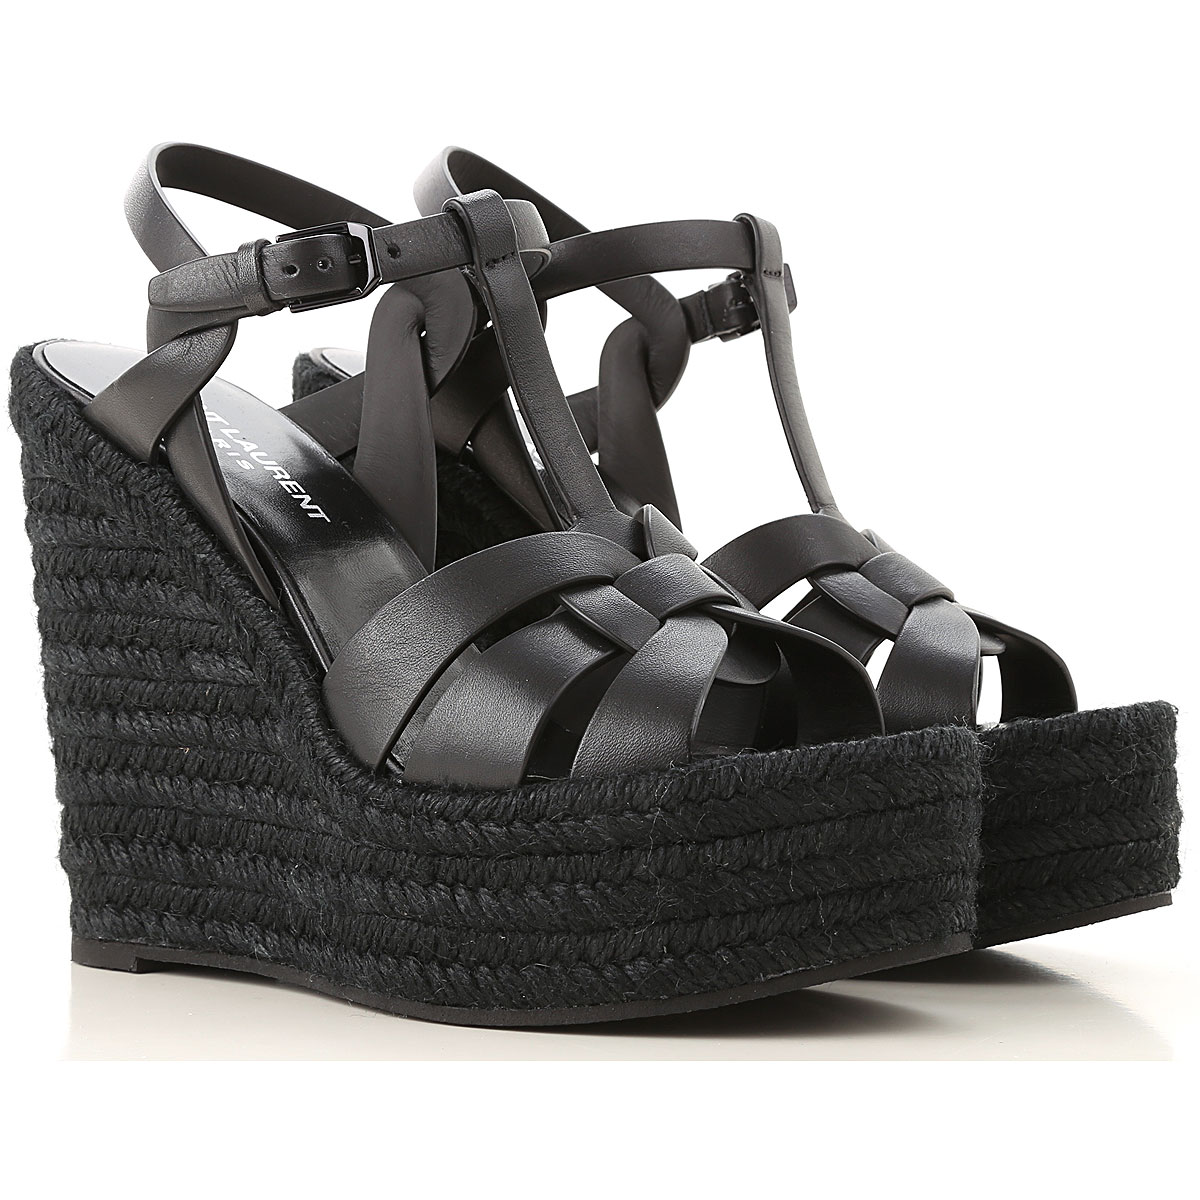 Yves Saint Laurent Wedges for Women Black USA - GOOFASH